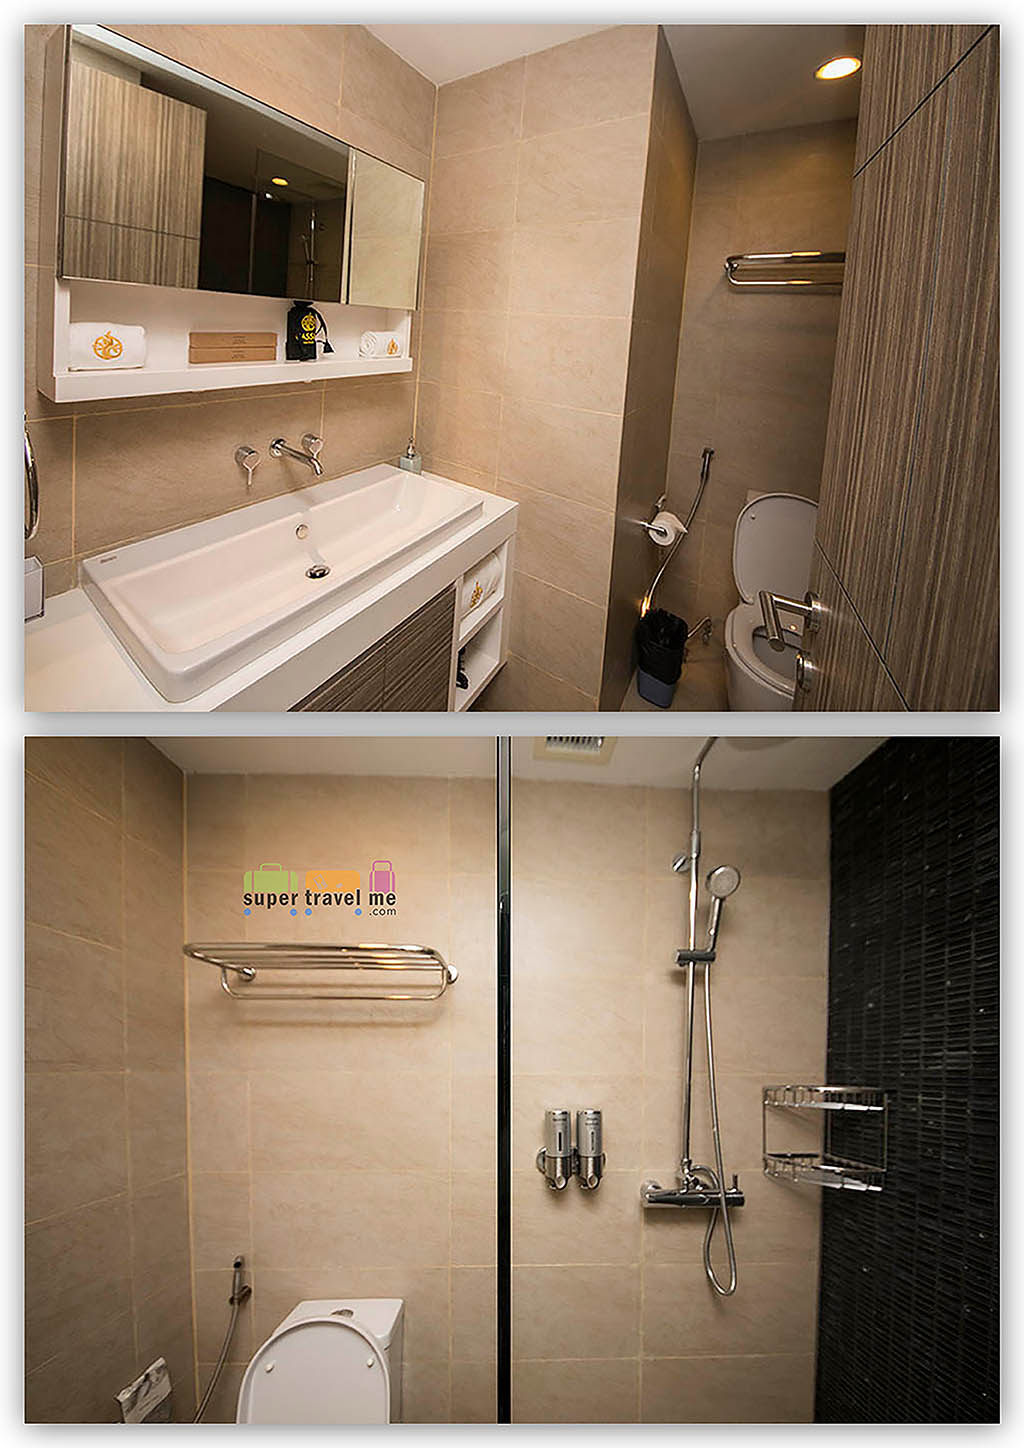 Ensuite Bathroom in Master Bedroom of Two-bedroom Loft Apartment